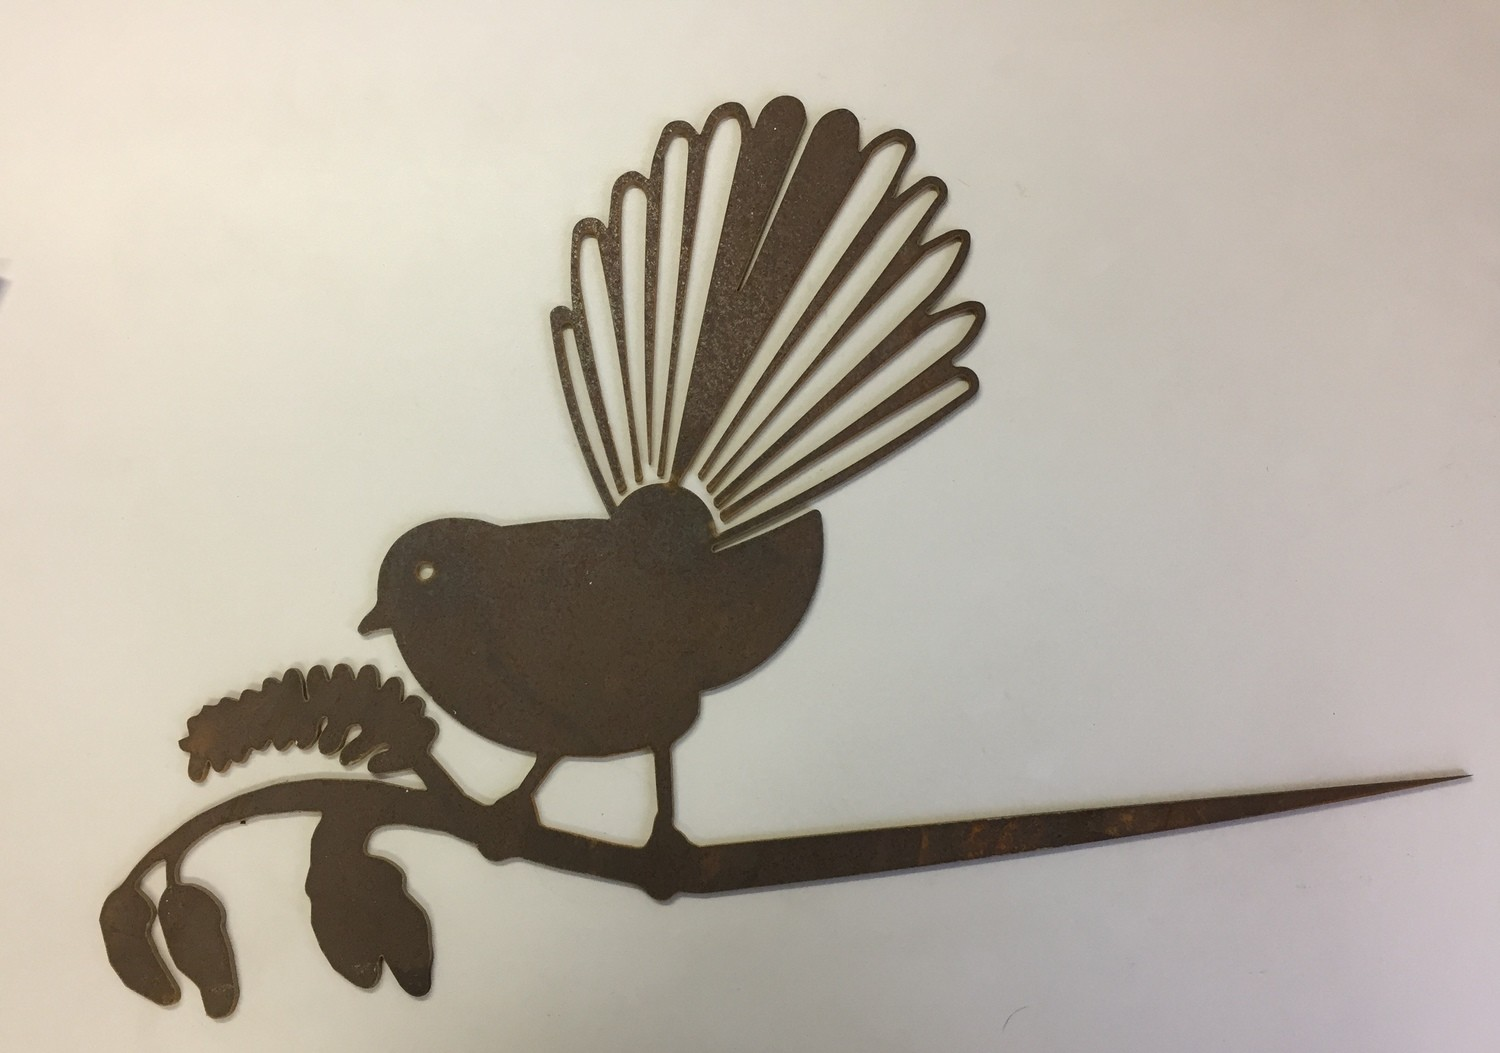 Fantail (spiked into tree or post)